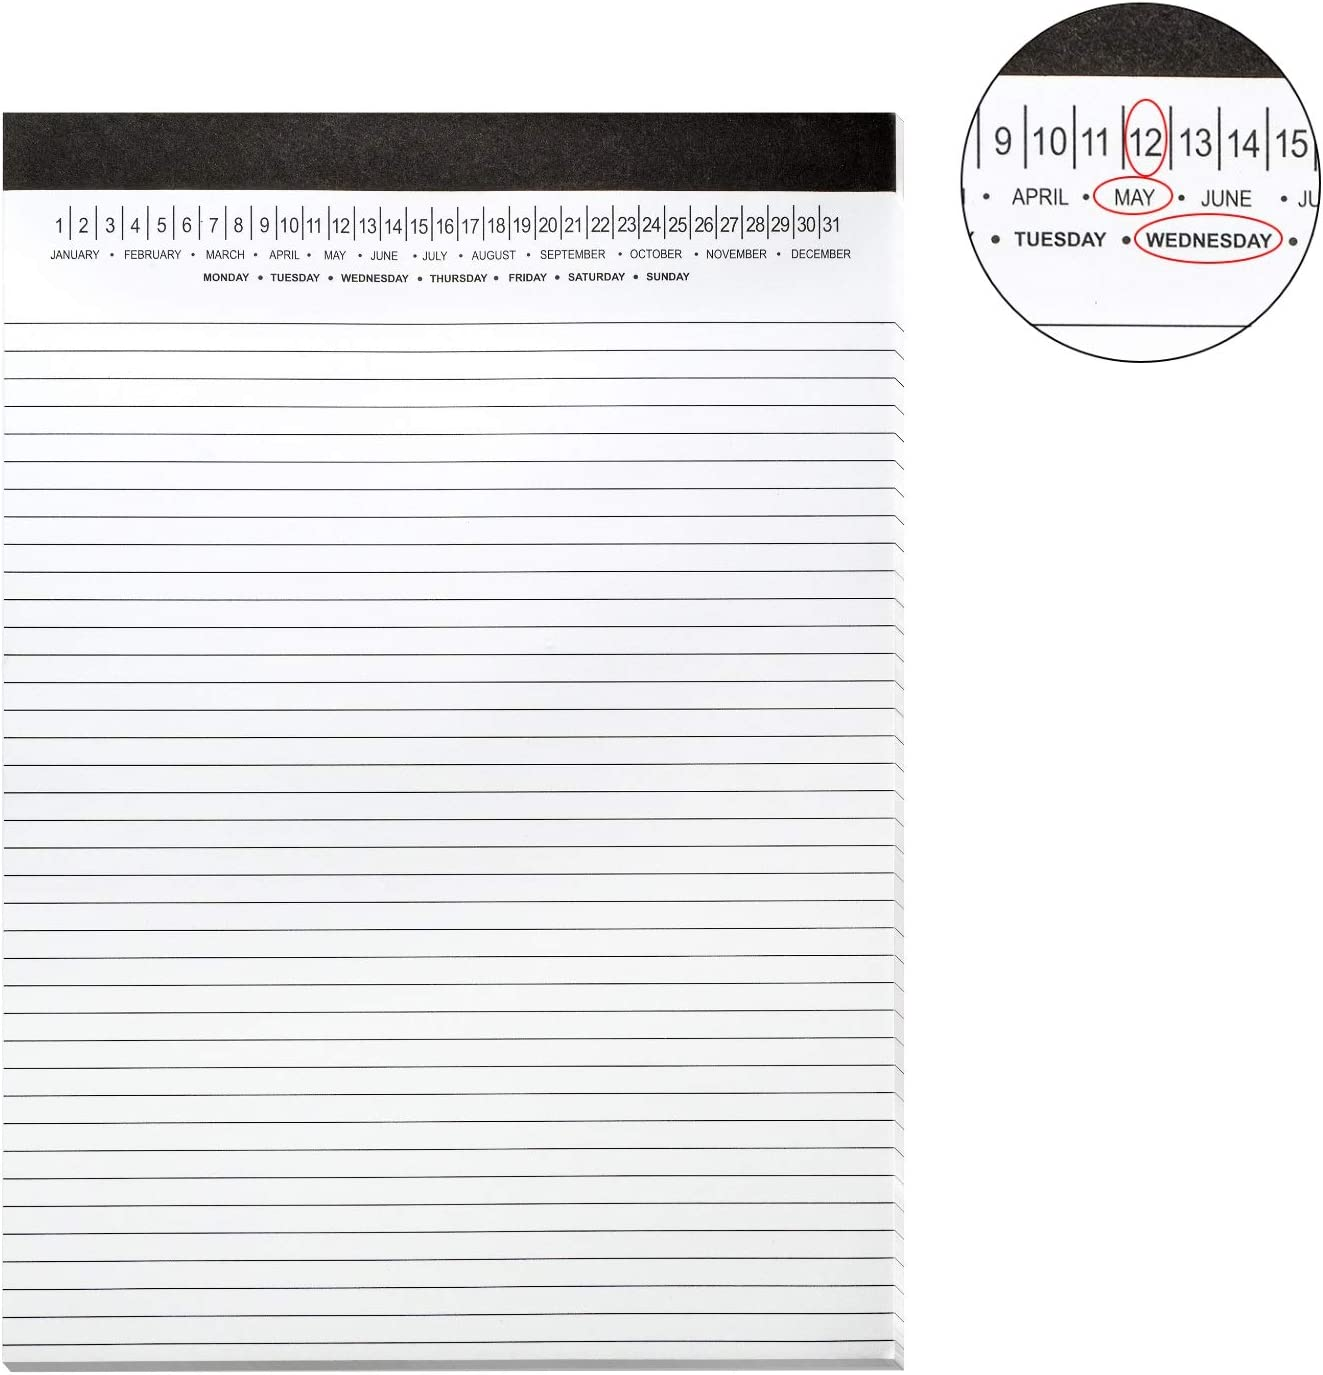 """Legal Pad with Date on Top, 366-366/366"""" x 366366-36/36"""", Write Paper, 3660 Sheets, 366366  Pack"""